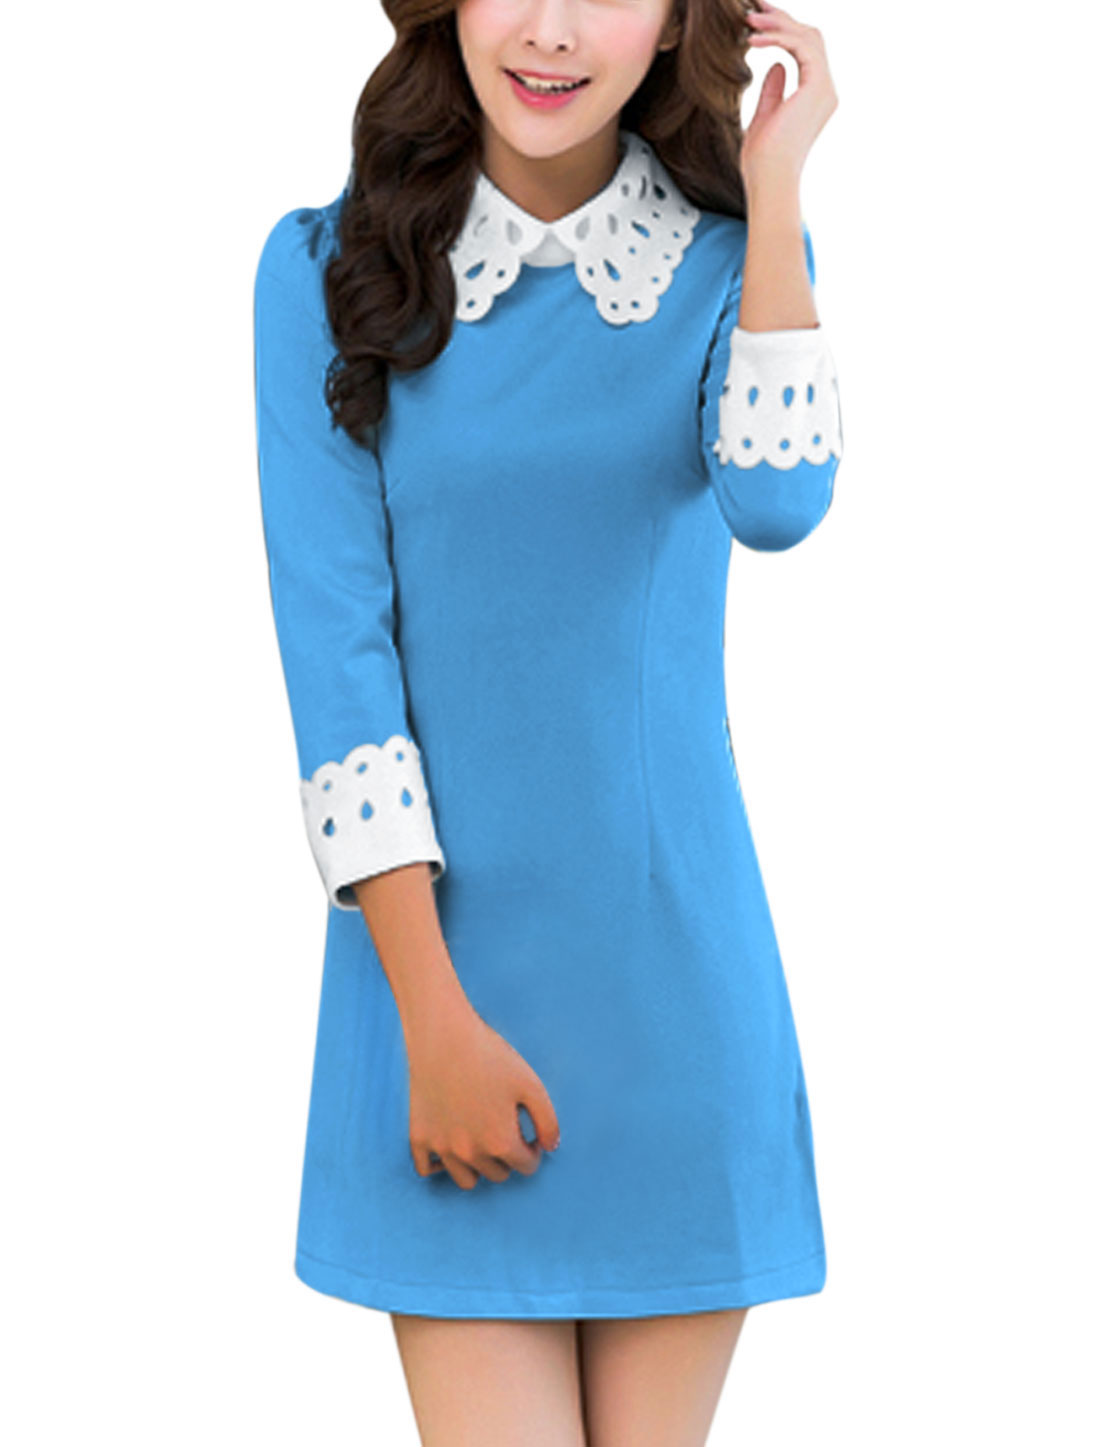 Lady 3/4 Sleeve Hollow Out Peter Pan Collar Casual Dress Blue M